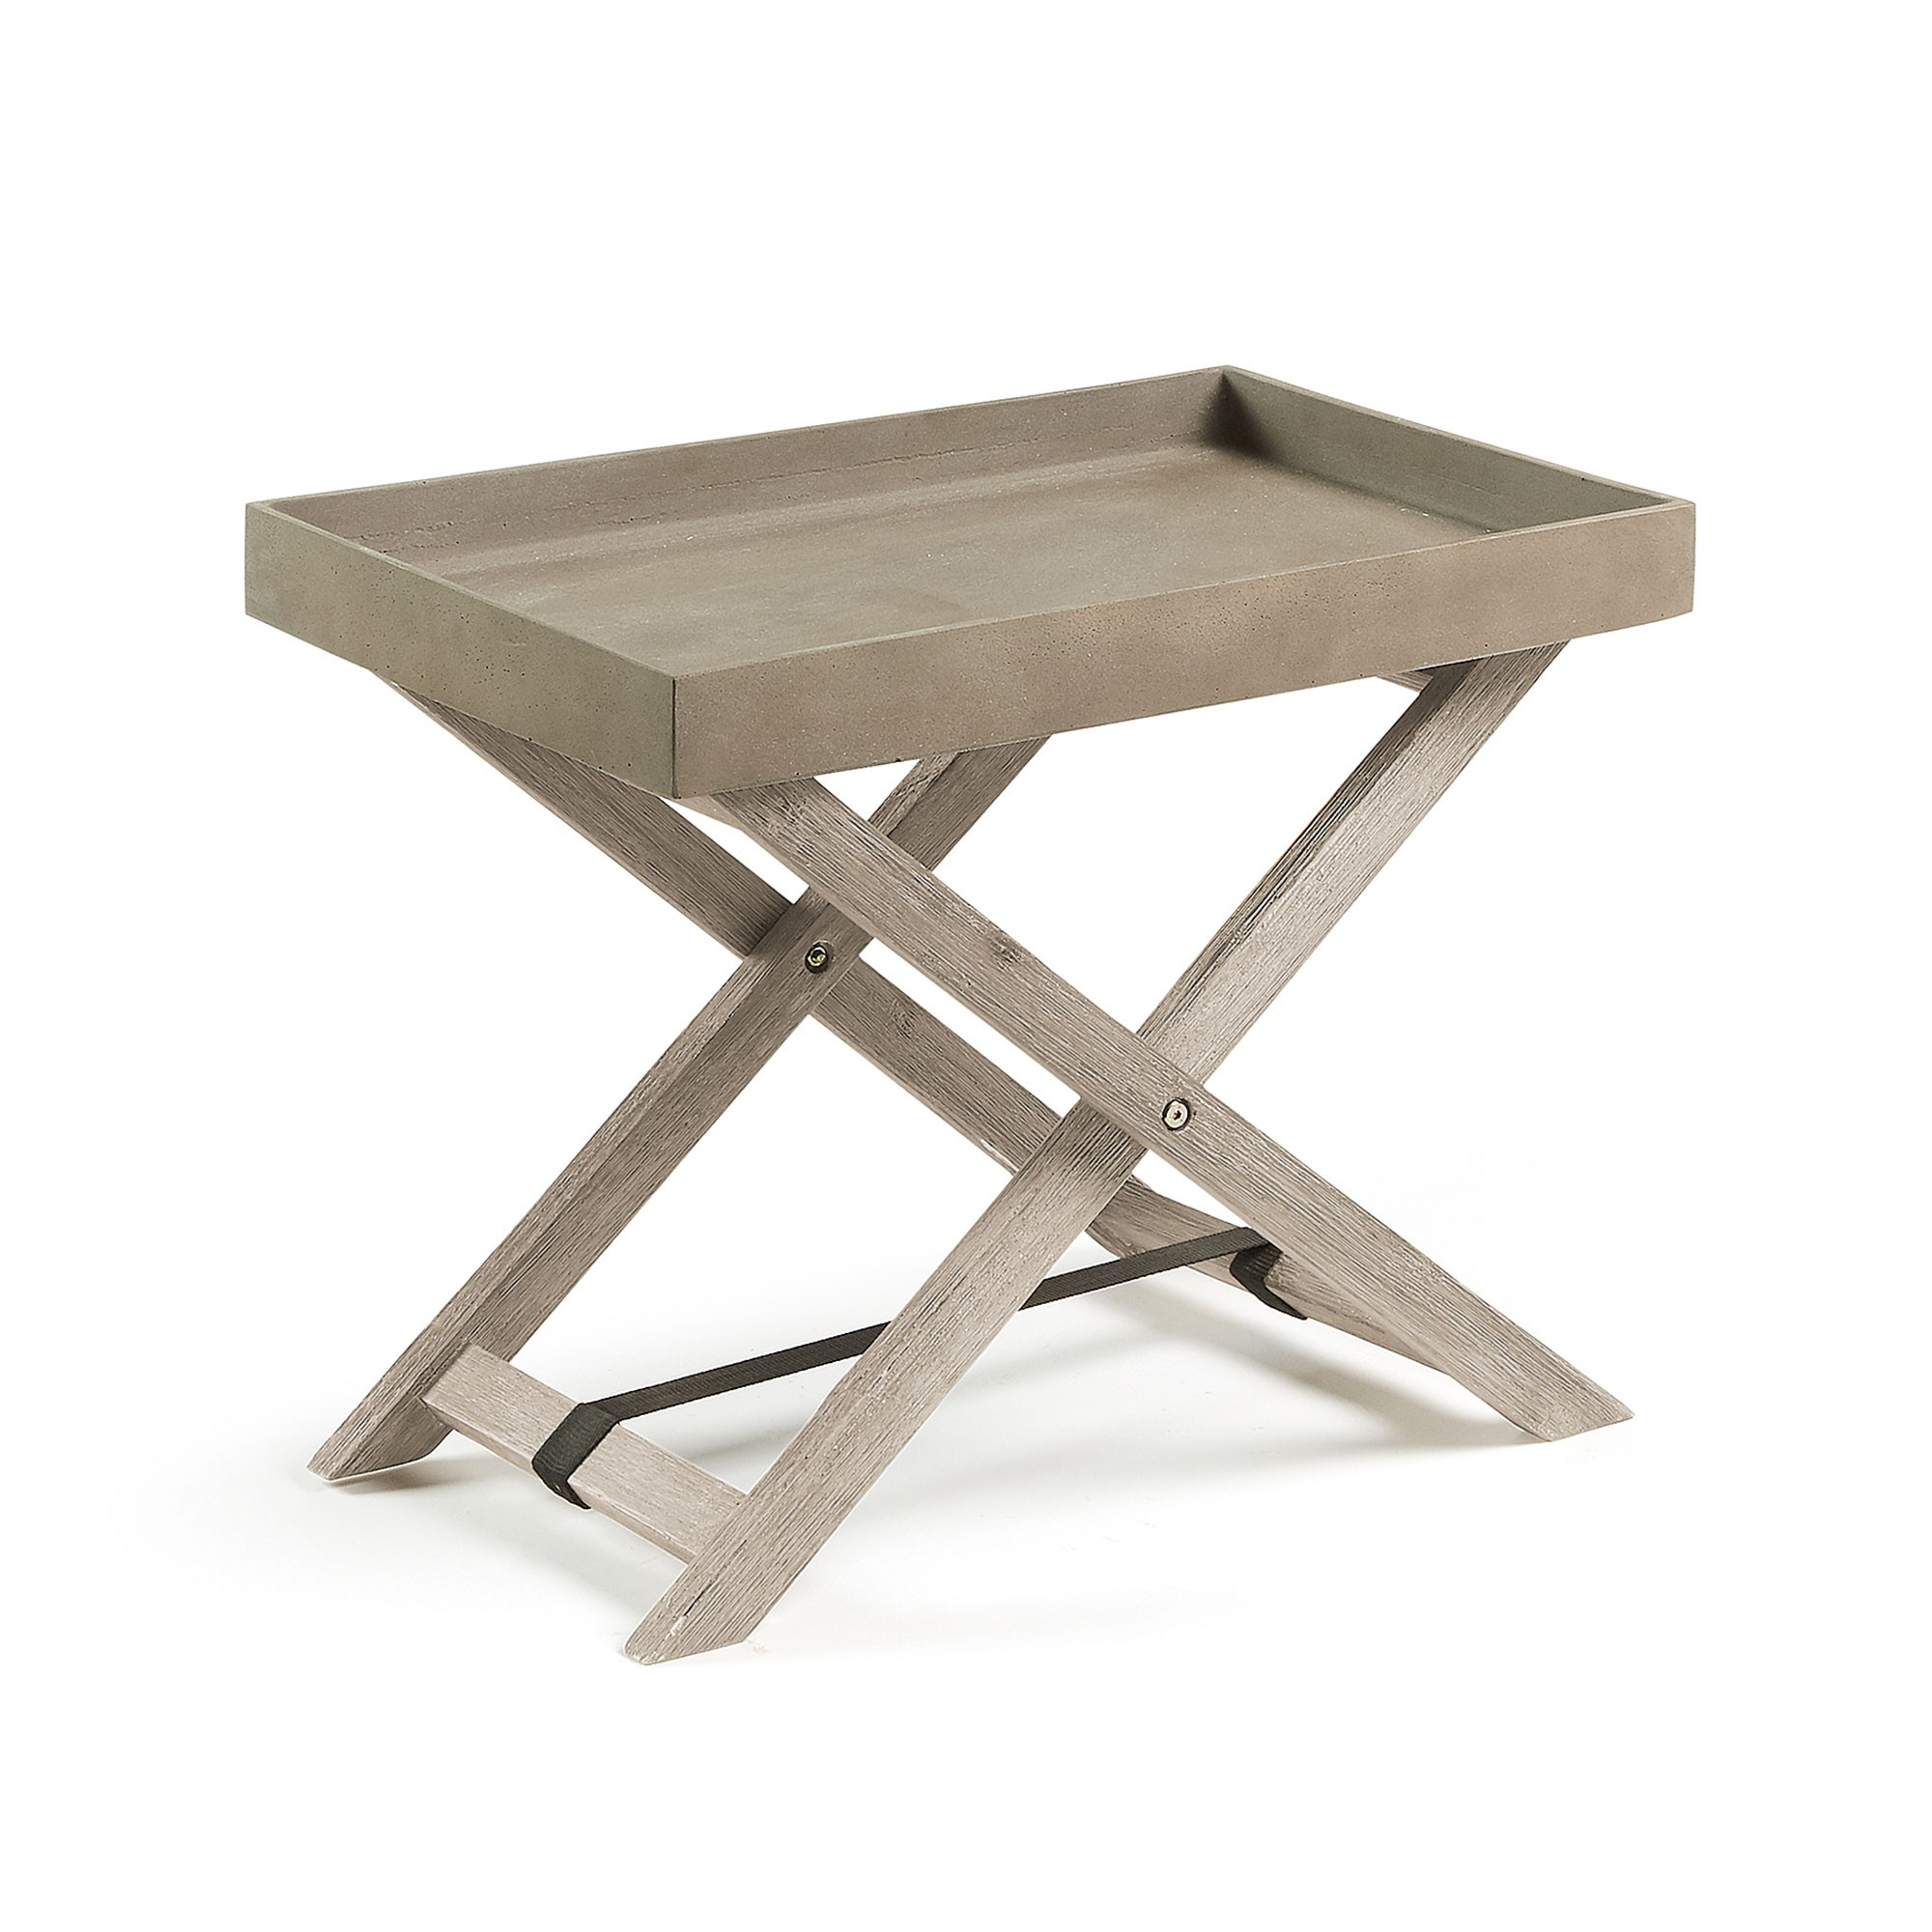 Sisley Acacia Timber Indoor / Outdoor Folding Side Table with Polycement Tray Top